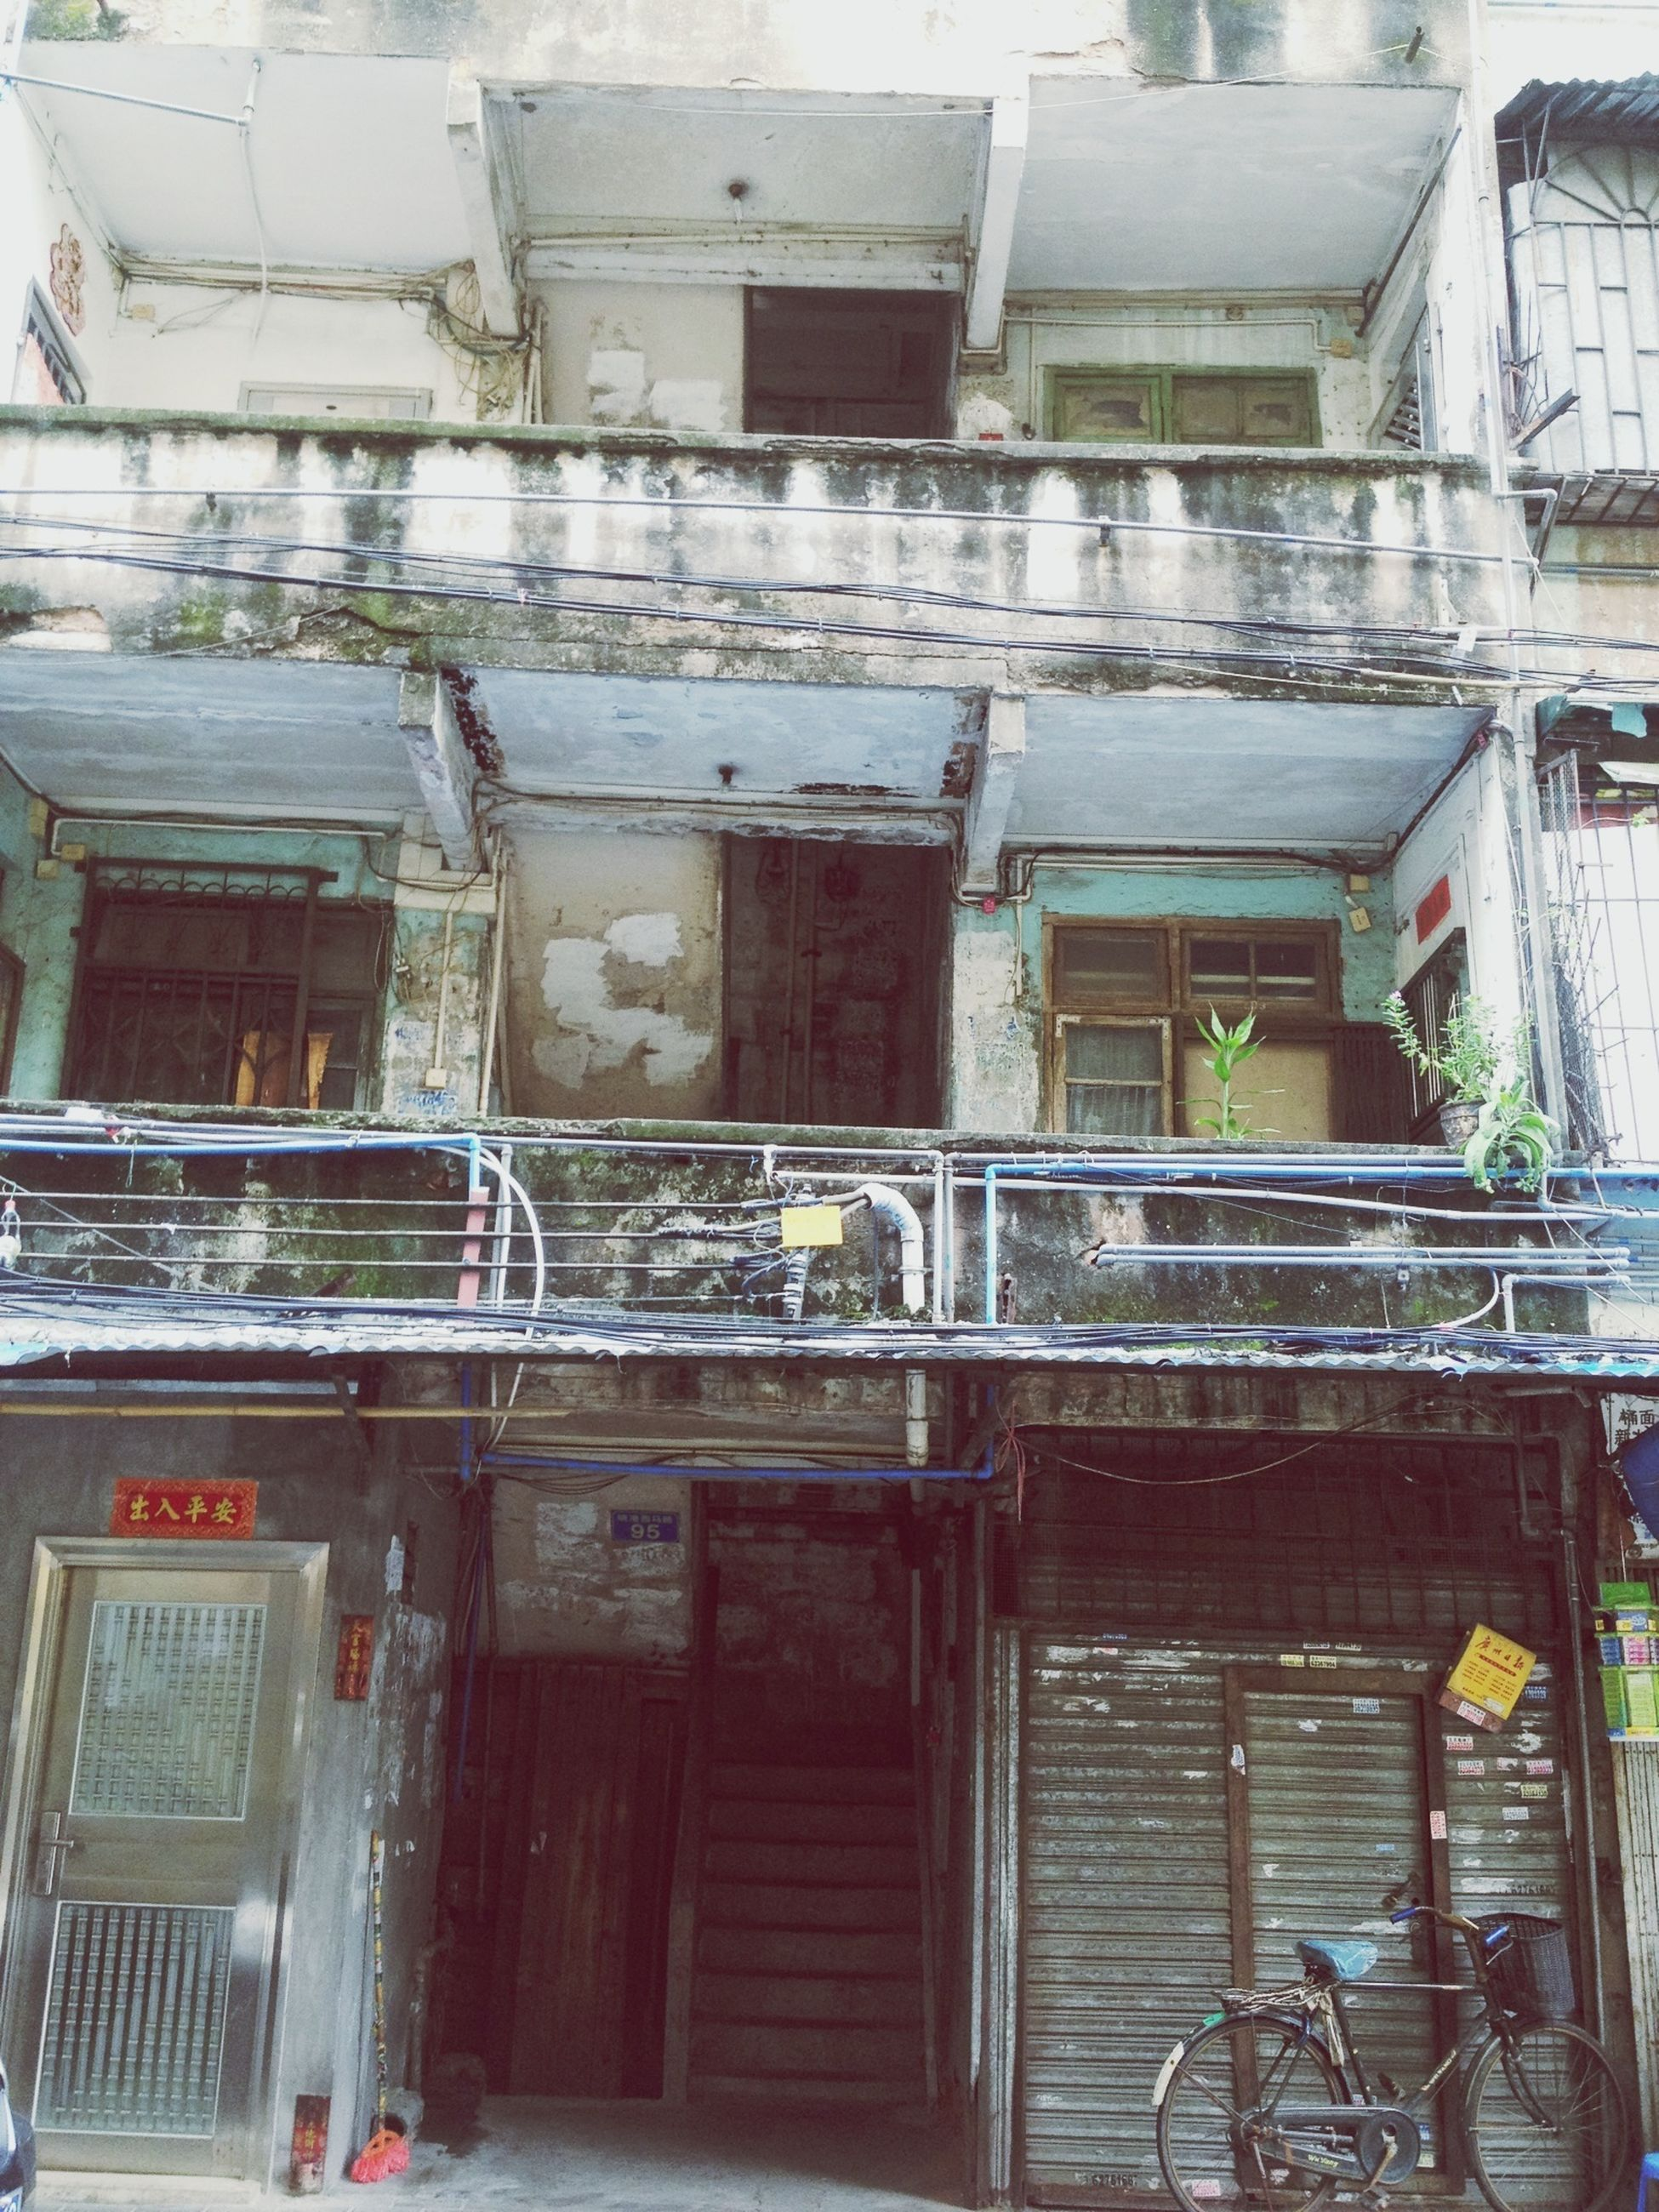 building exterior, architecture, built structure, window, residential structure, residential building, house, building, men, day, bicycle, outdoors, transportation, old, door, street, city, balcony